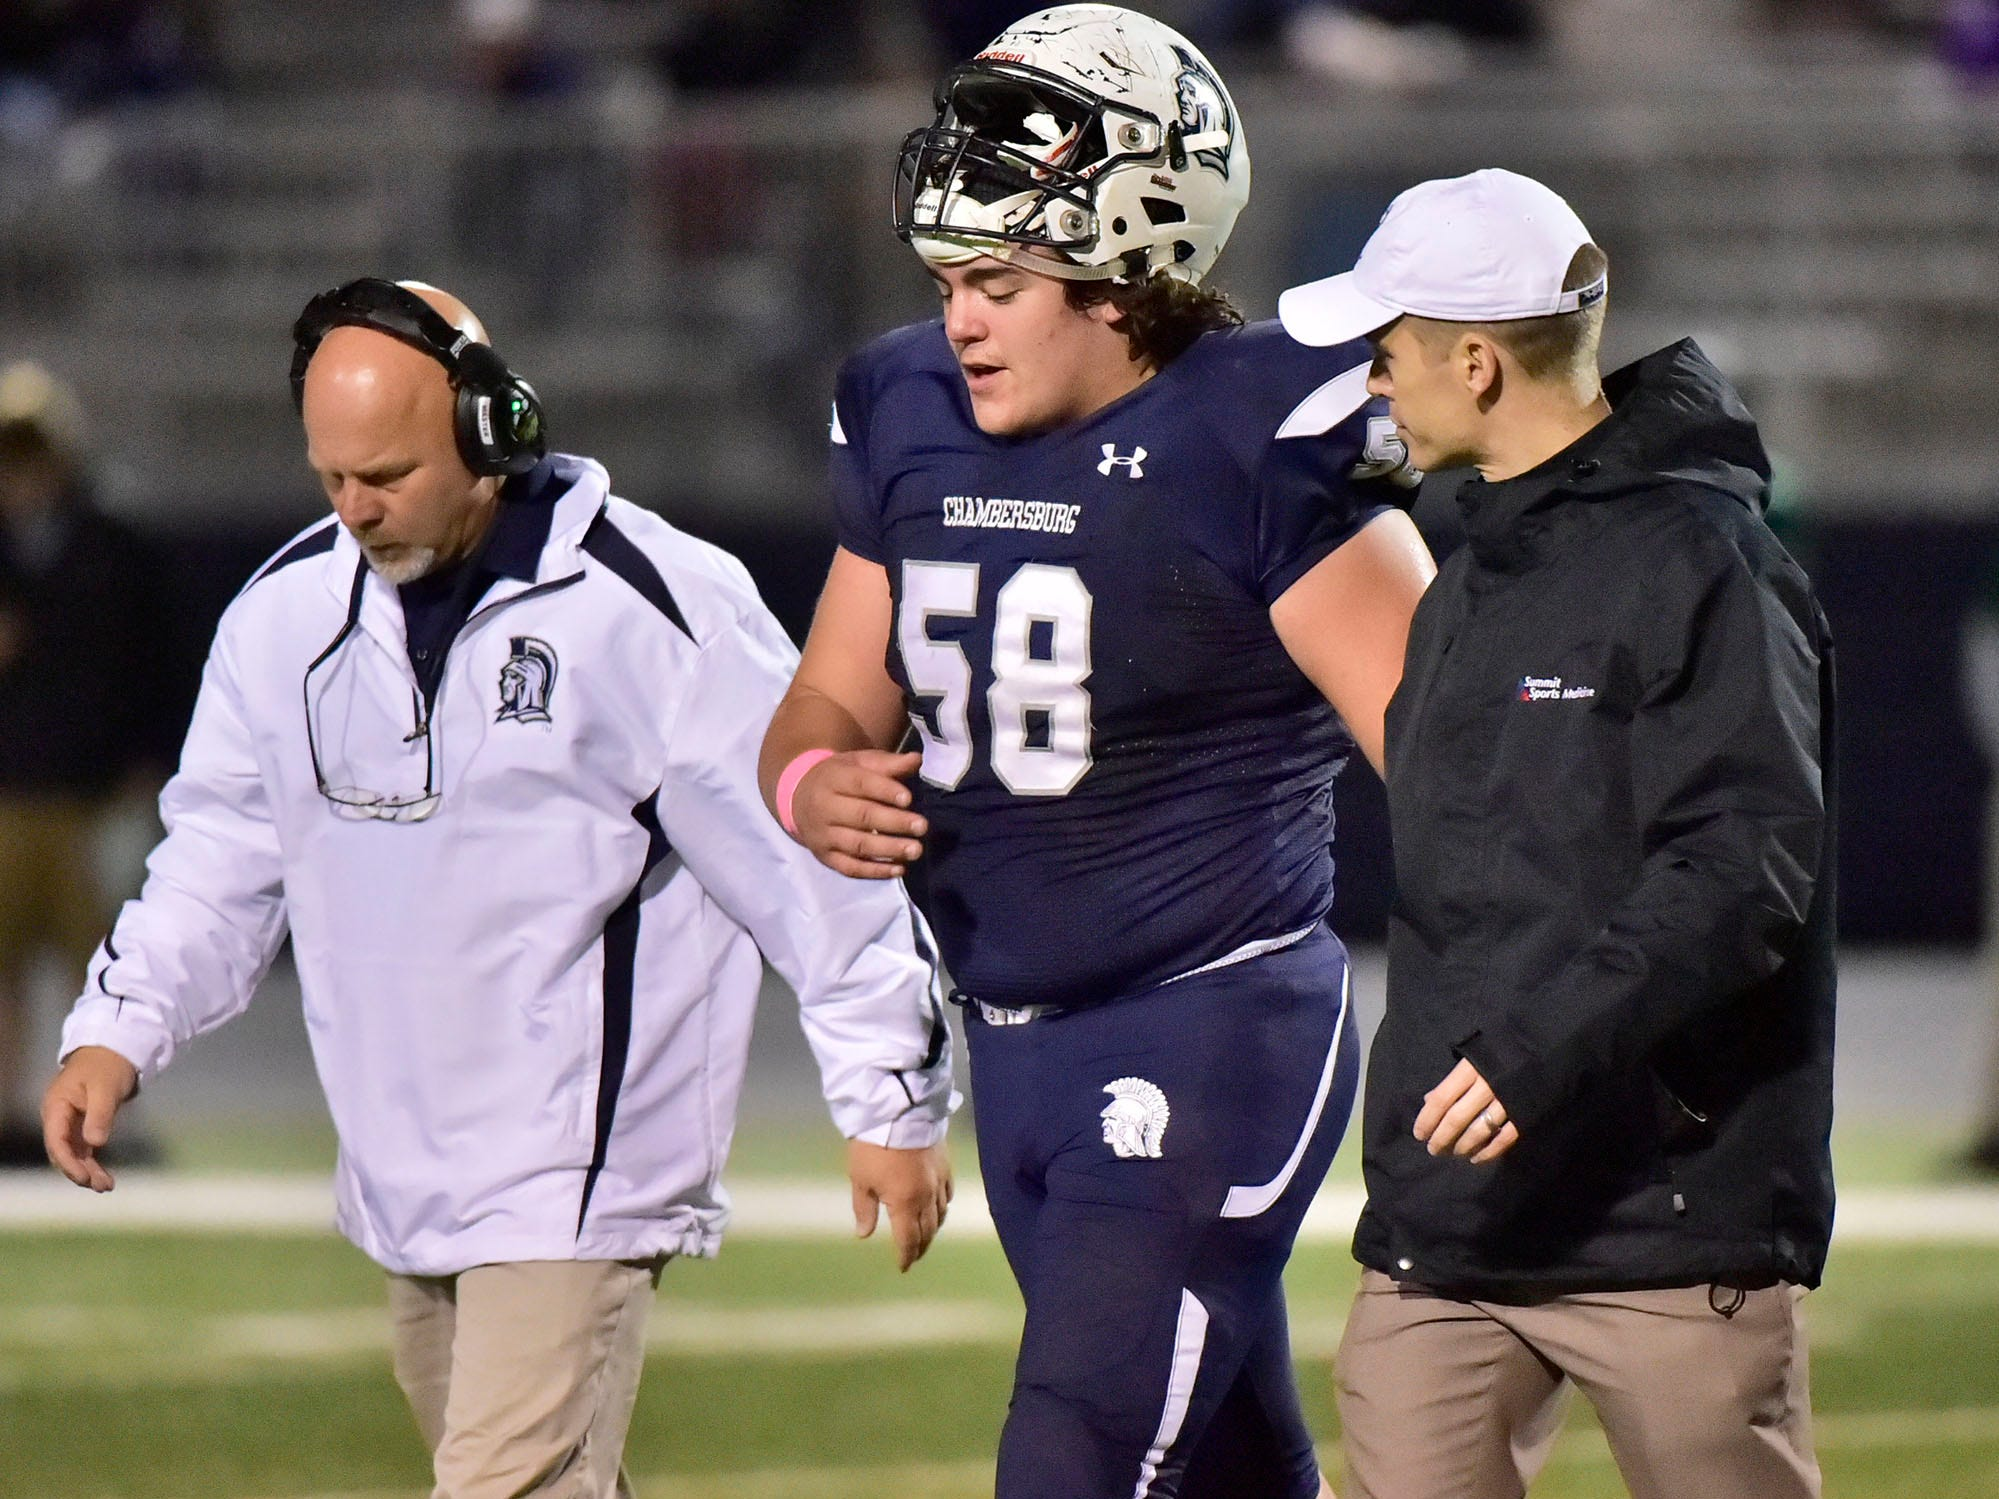 Chambersburg's Tucker Karn (58) walks to the sideline following an injury. Chambersburg lost to Central Dauphin 35-14 in PIAA football on Friday, Oct. 19, 2018.